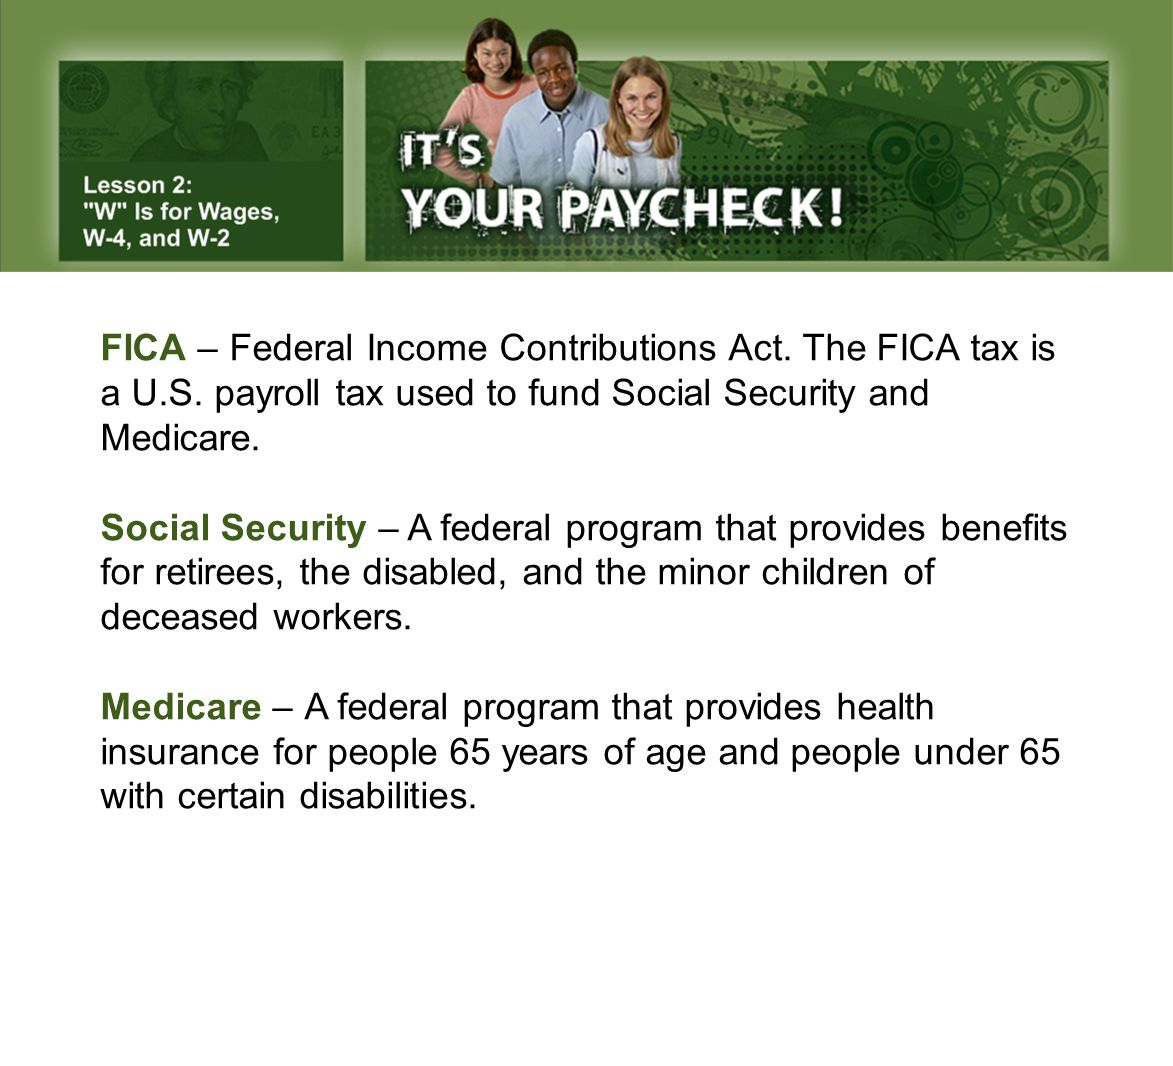 FICA – Federal Income Contributions Act. The FICA tax is a U. S